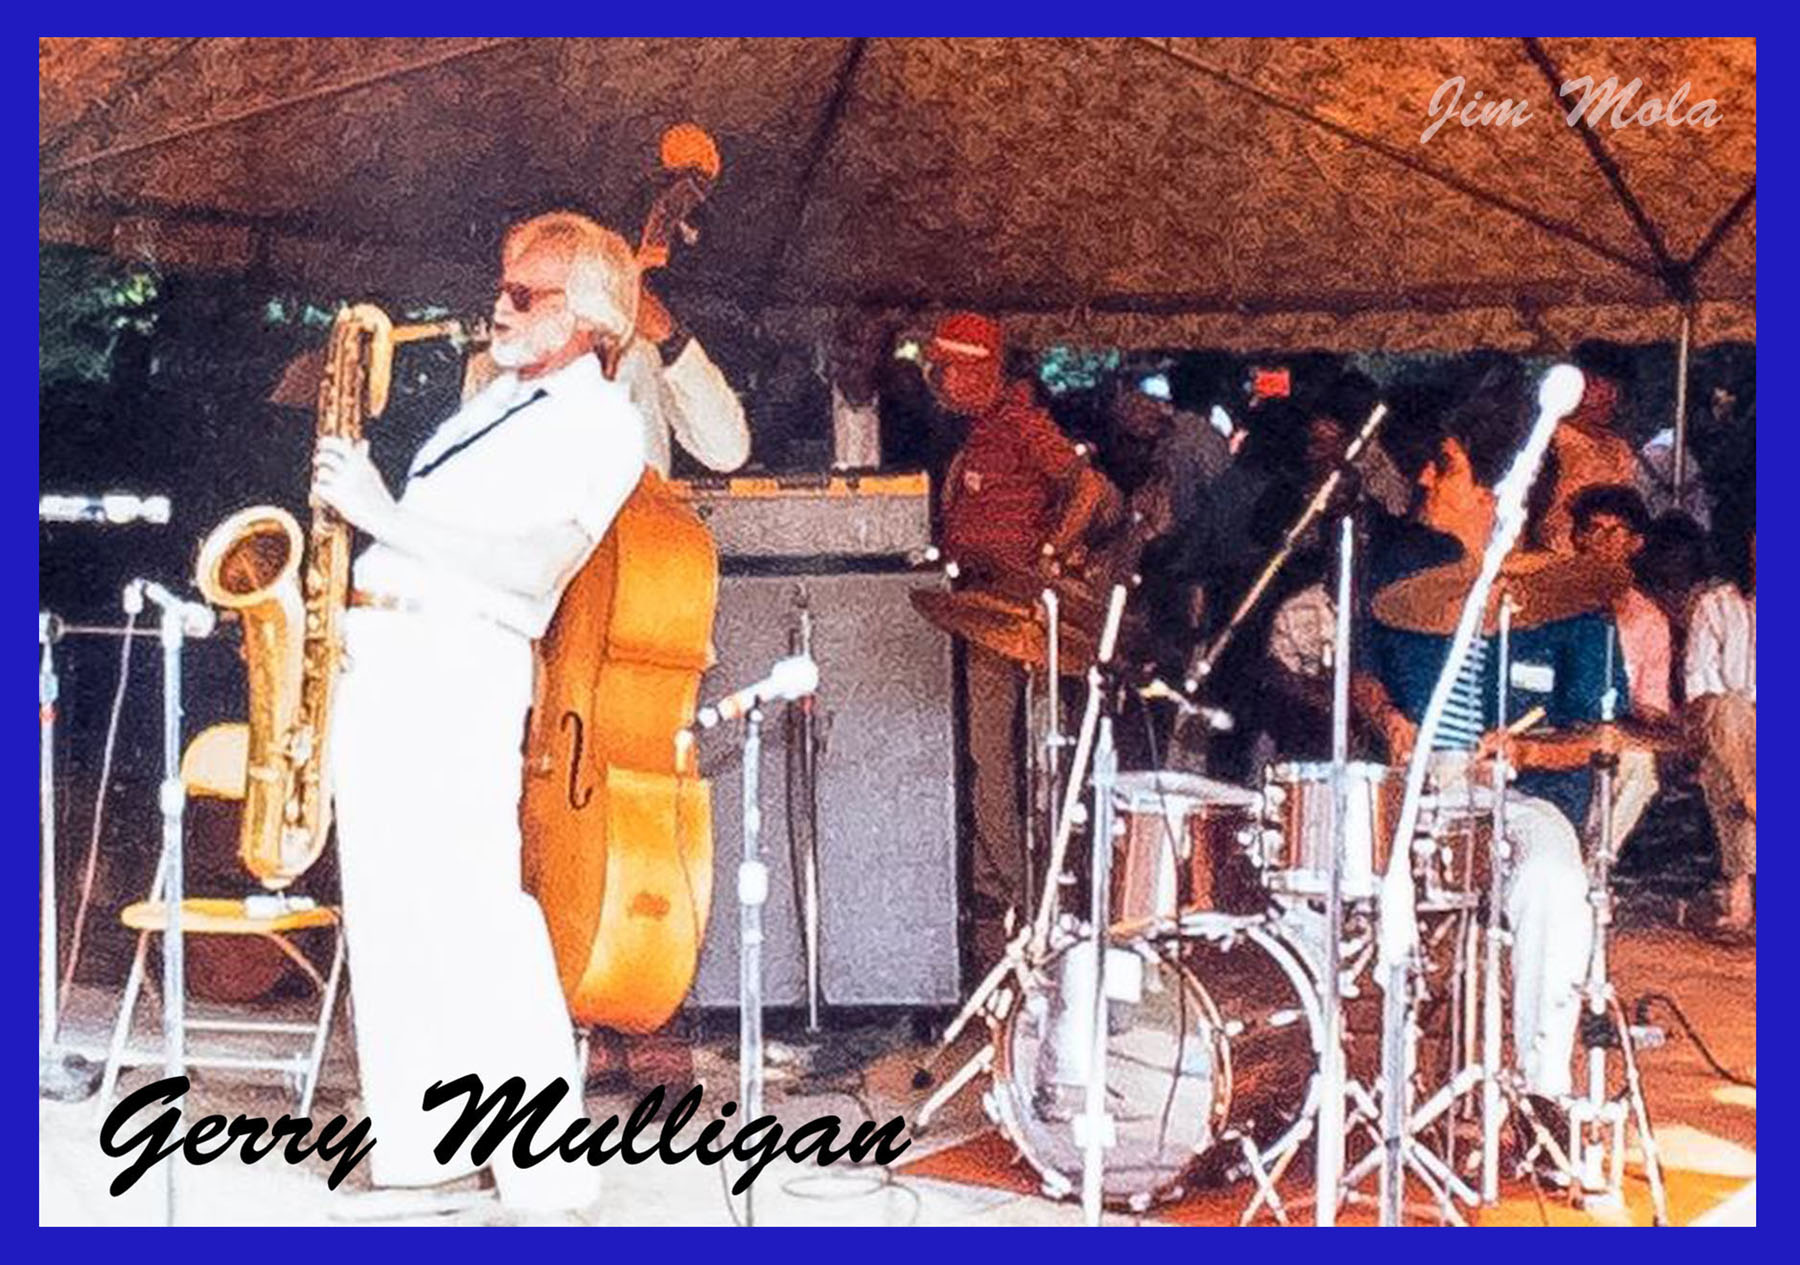 Gerry-Mulligan.jpg